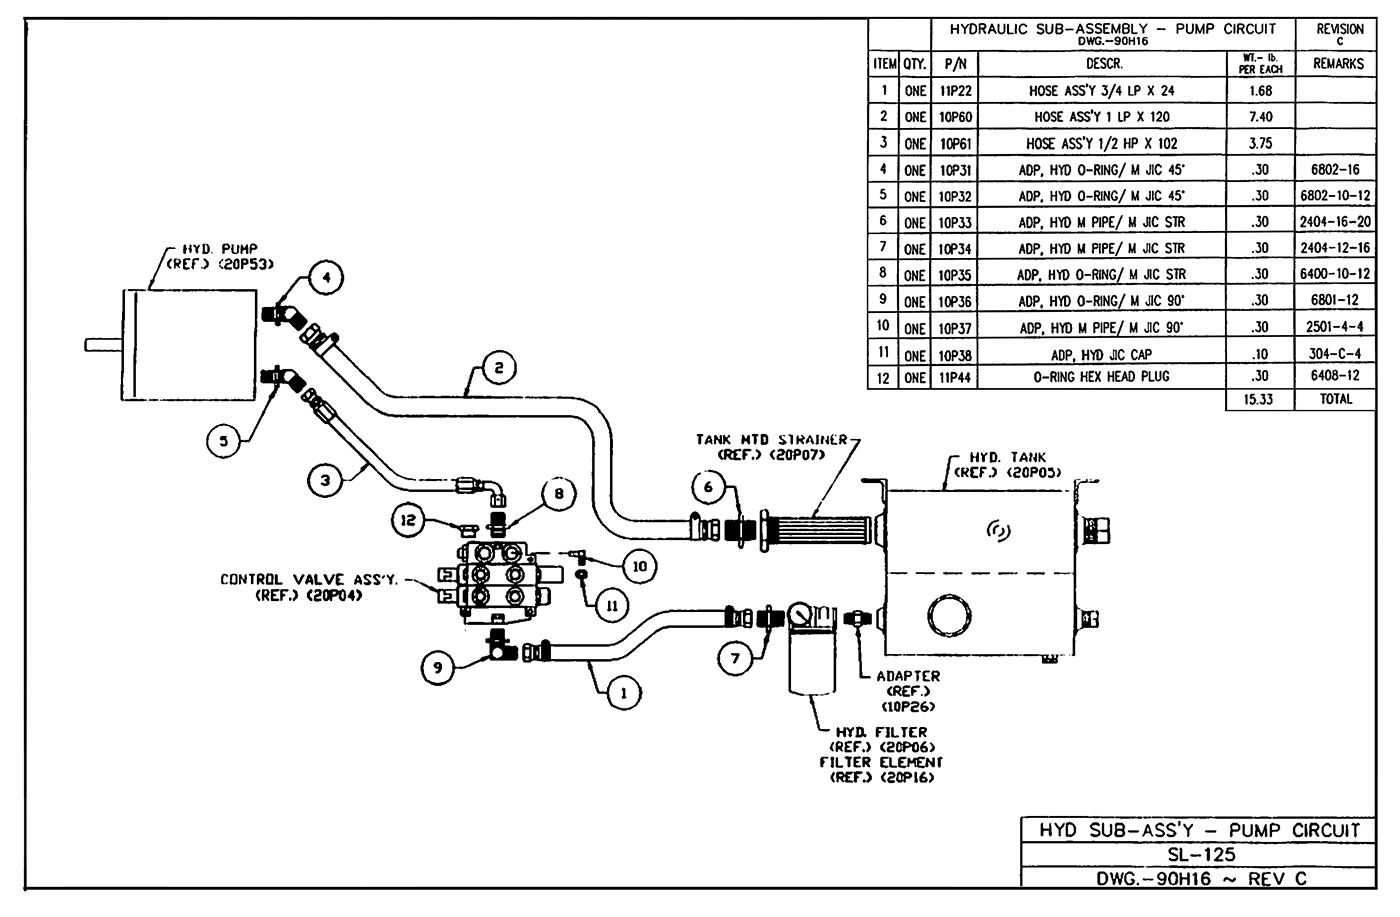 SL-125 Hydraulic Sub-Assembly (Pump Circuit) Diagram